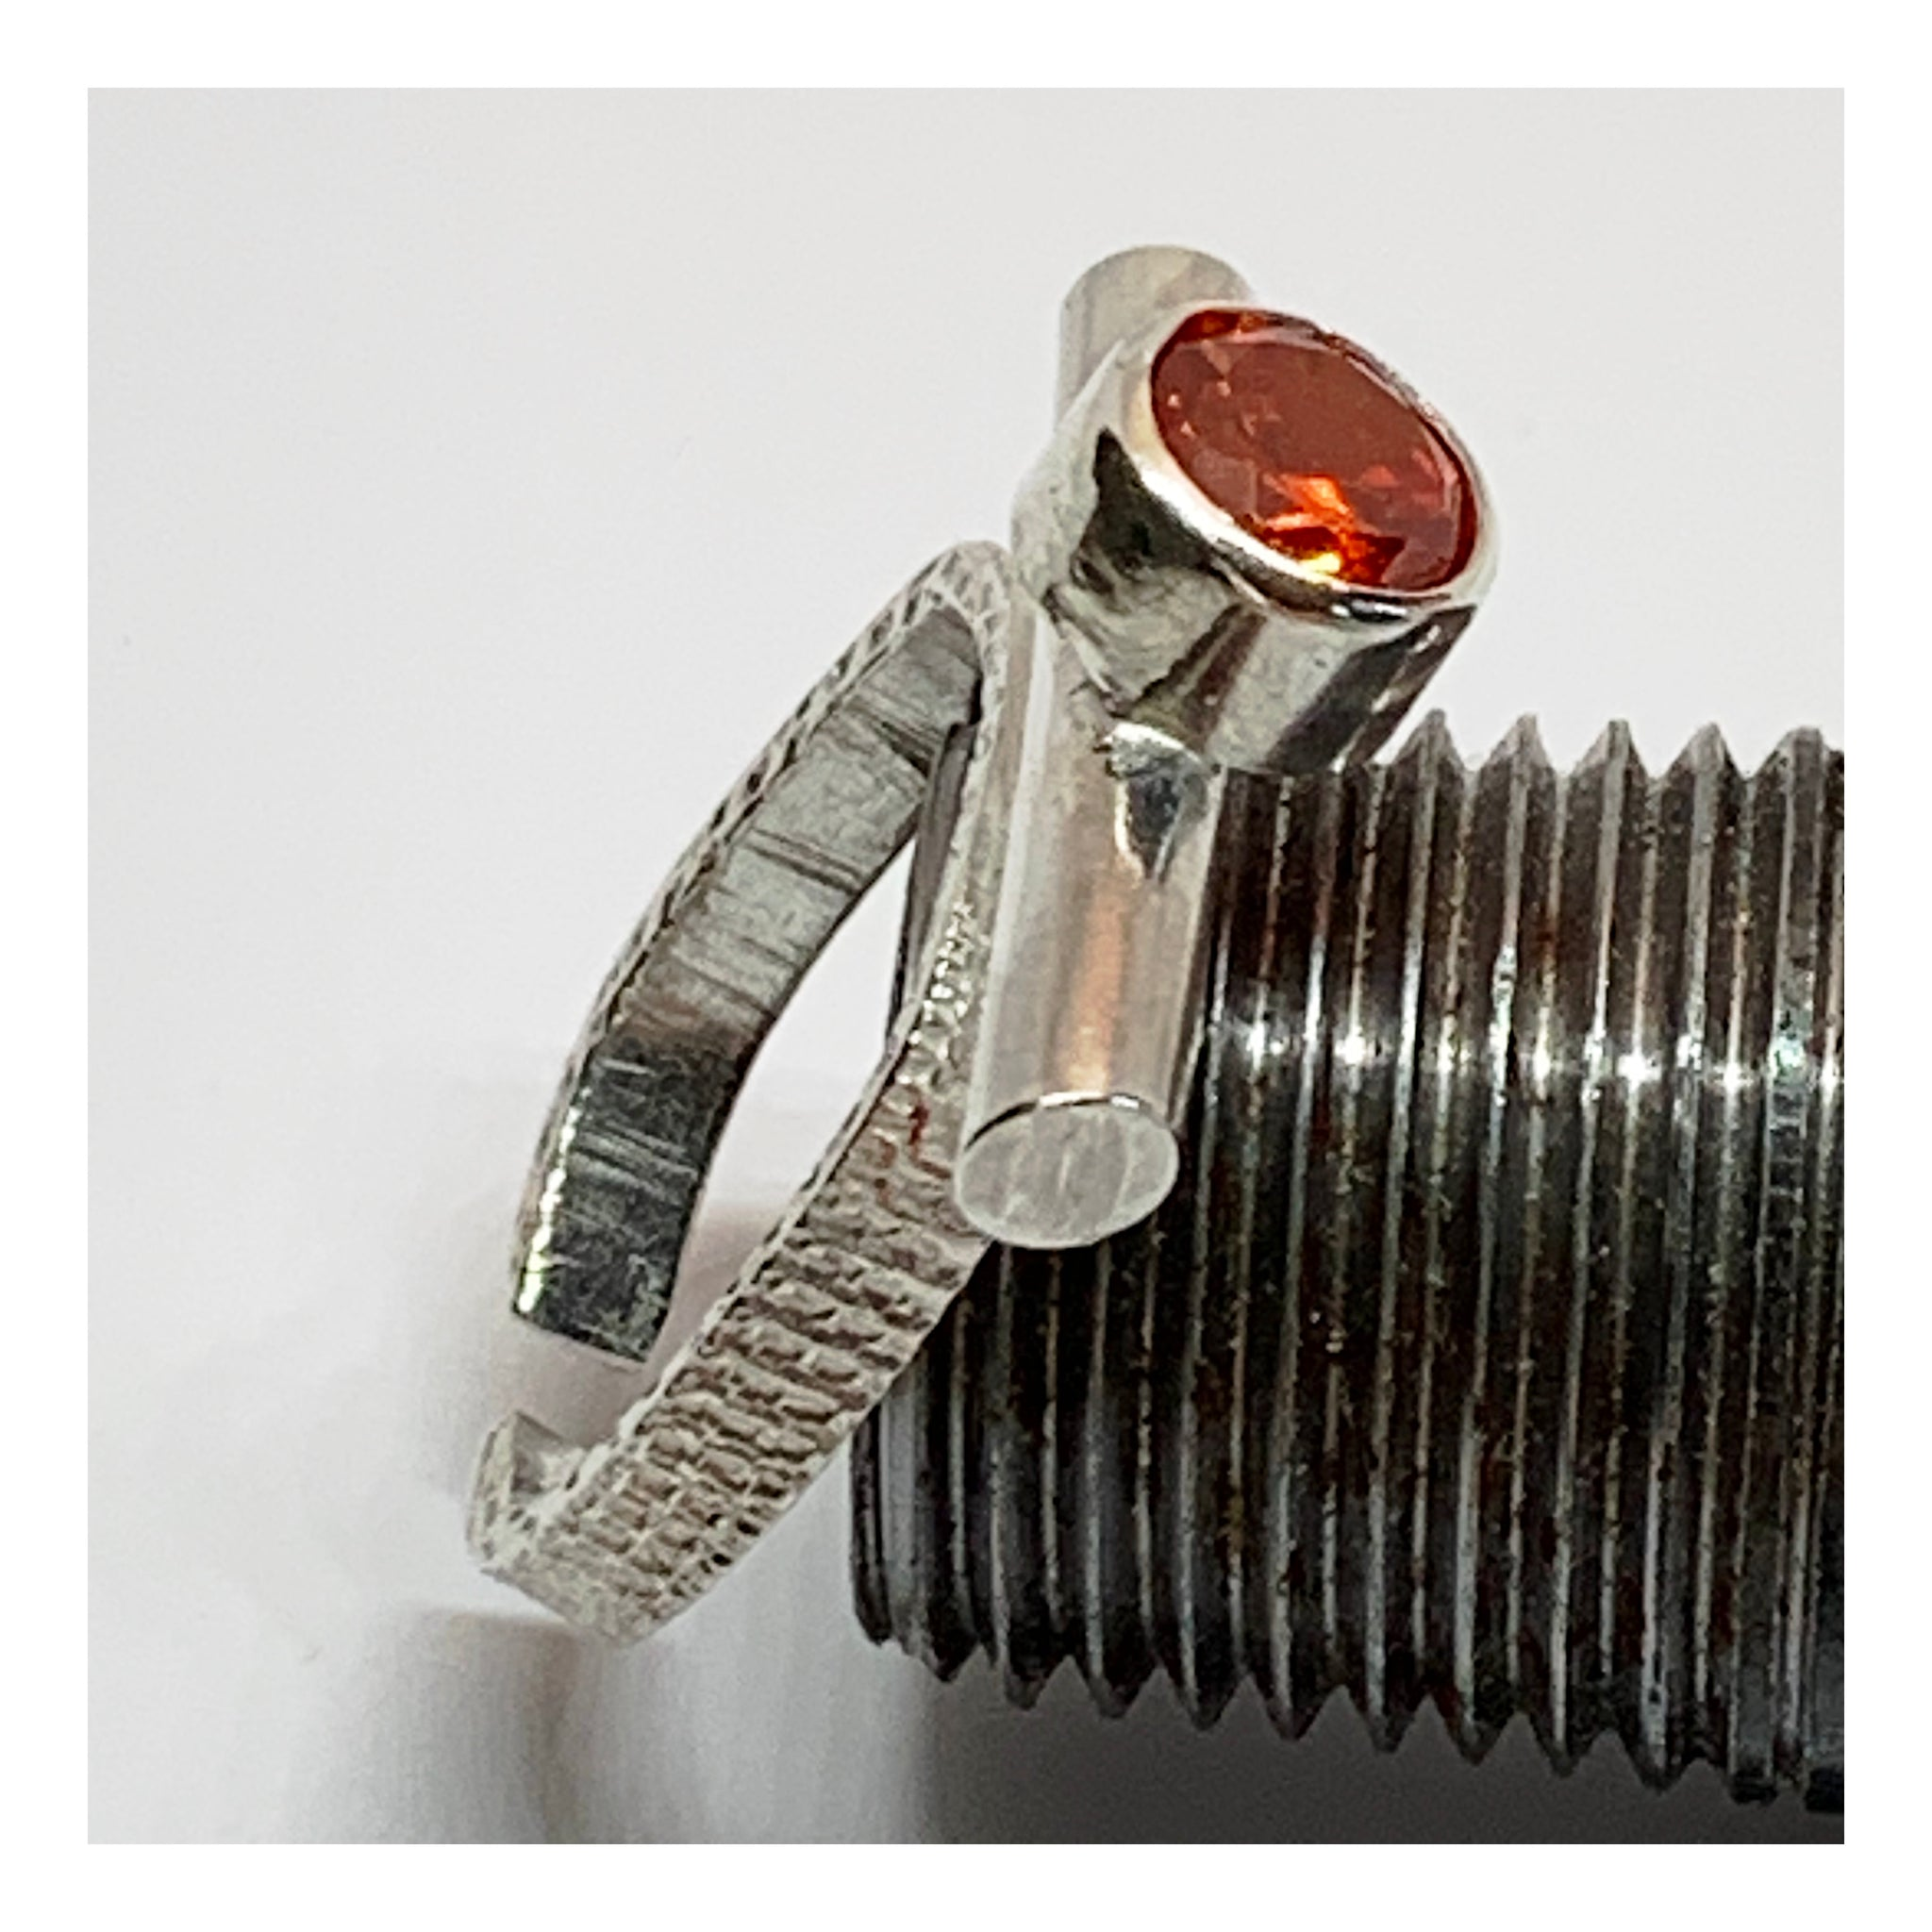 Unique Artisan Ring with Bright Orange Cubic Zirconia